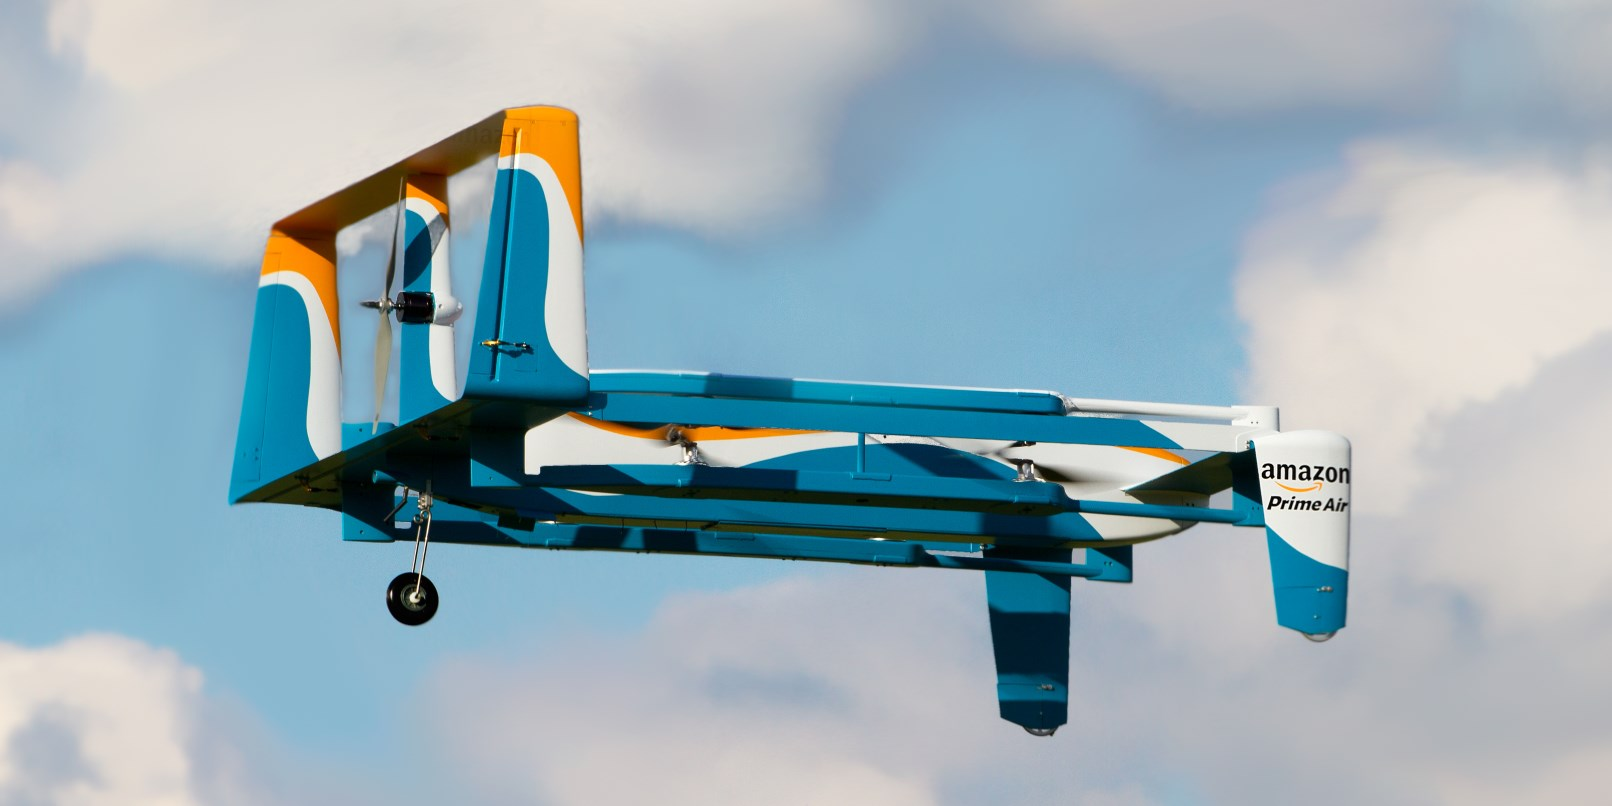 Amazon and UPS are squaring up over drone delivery